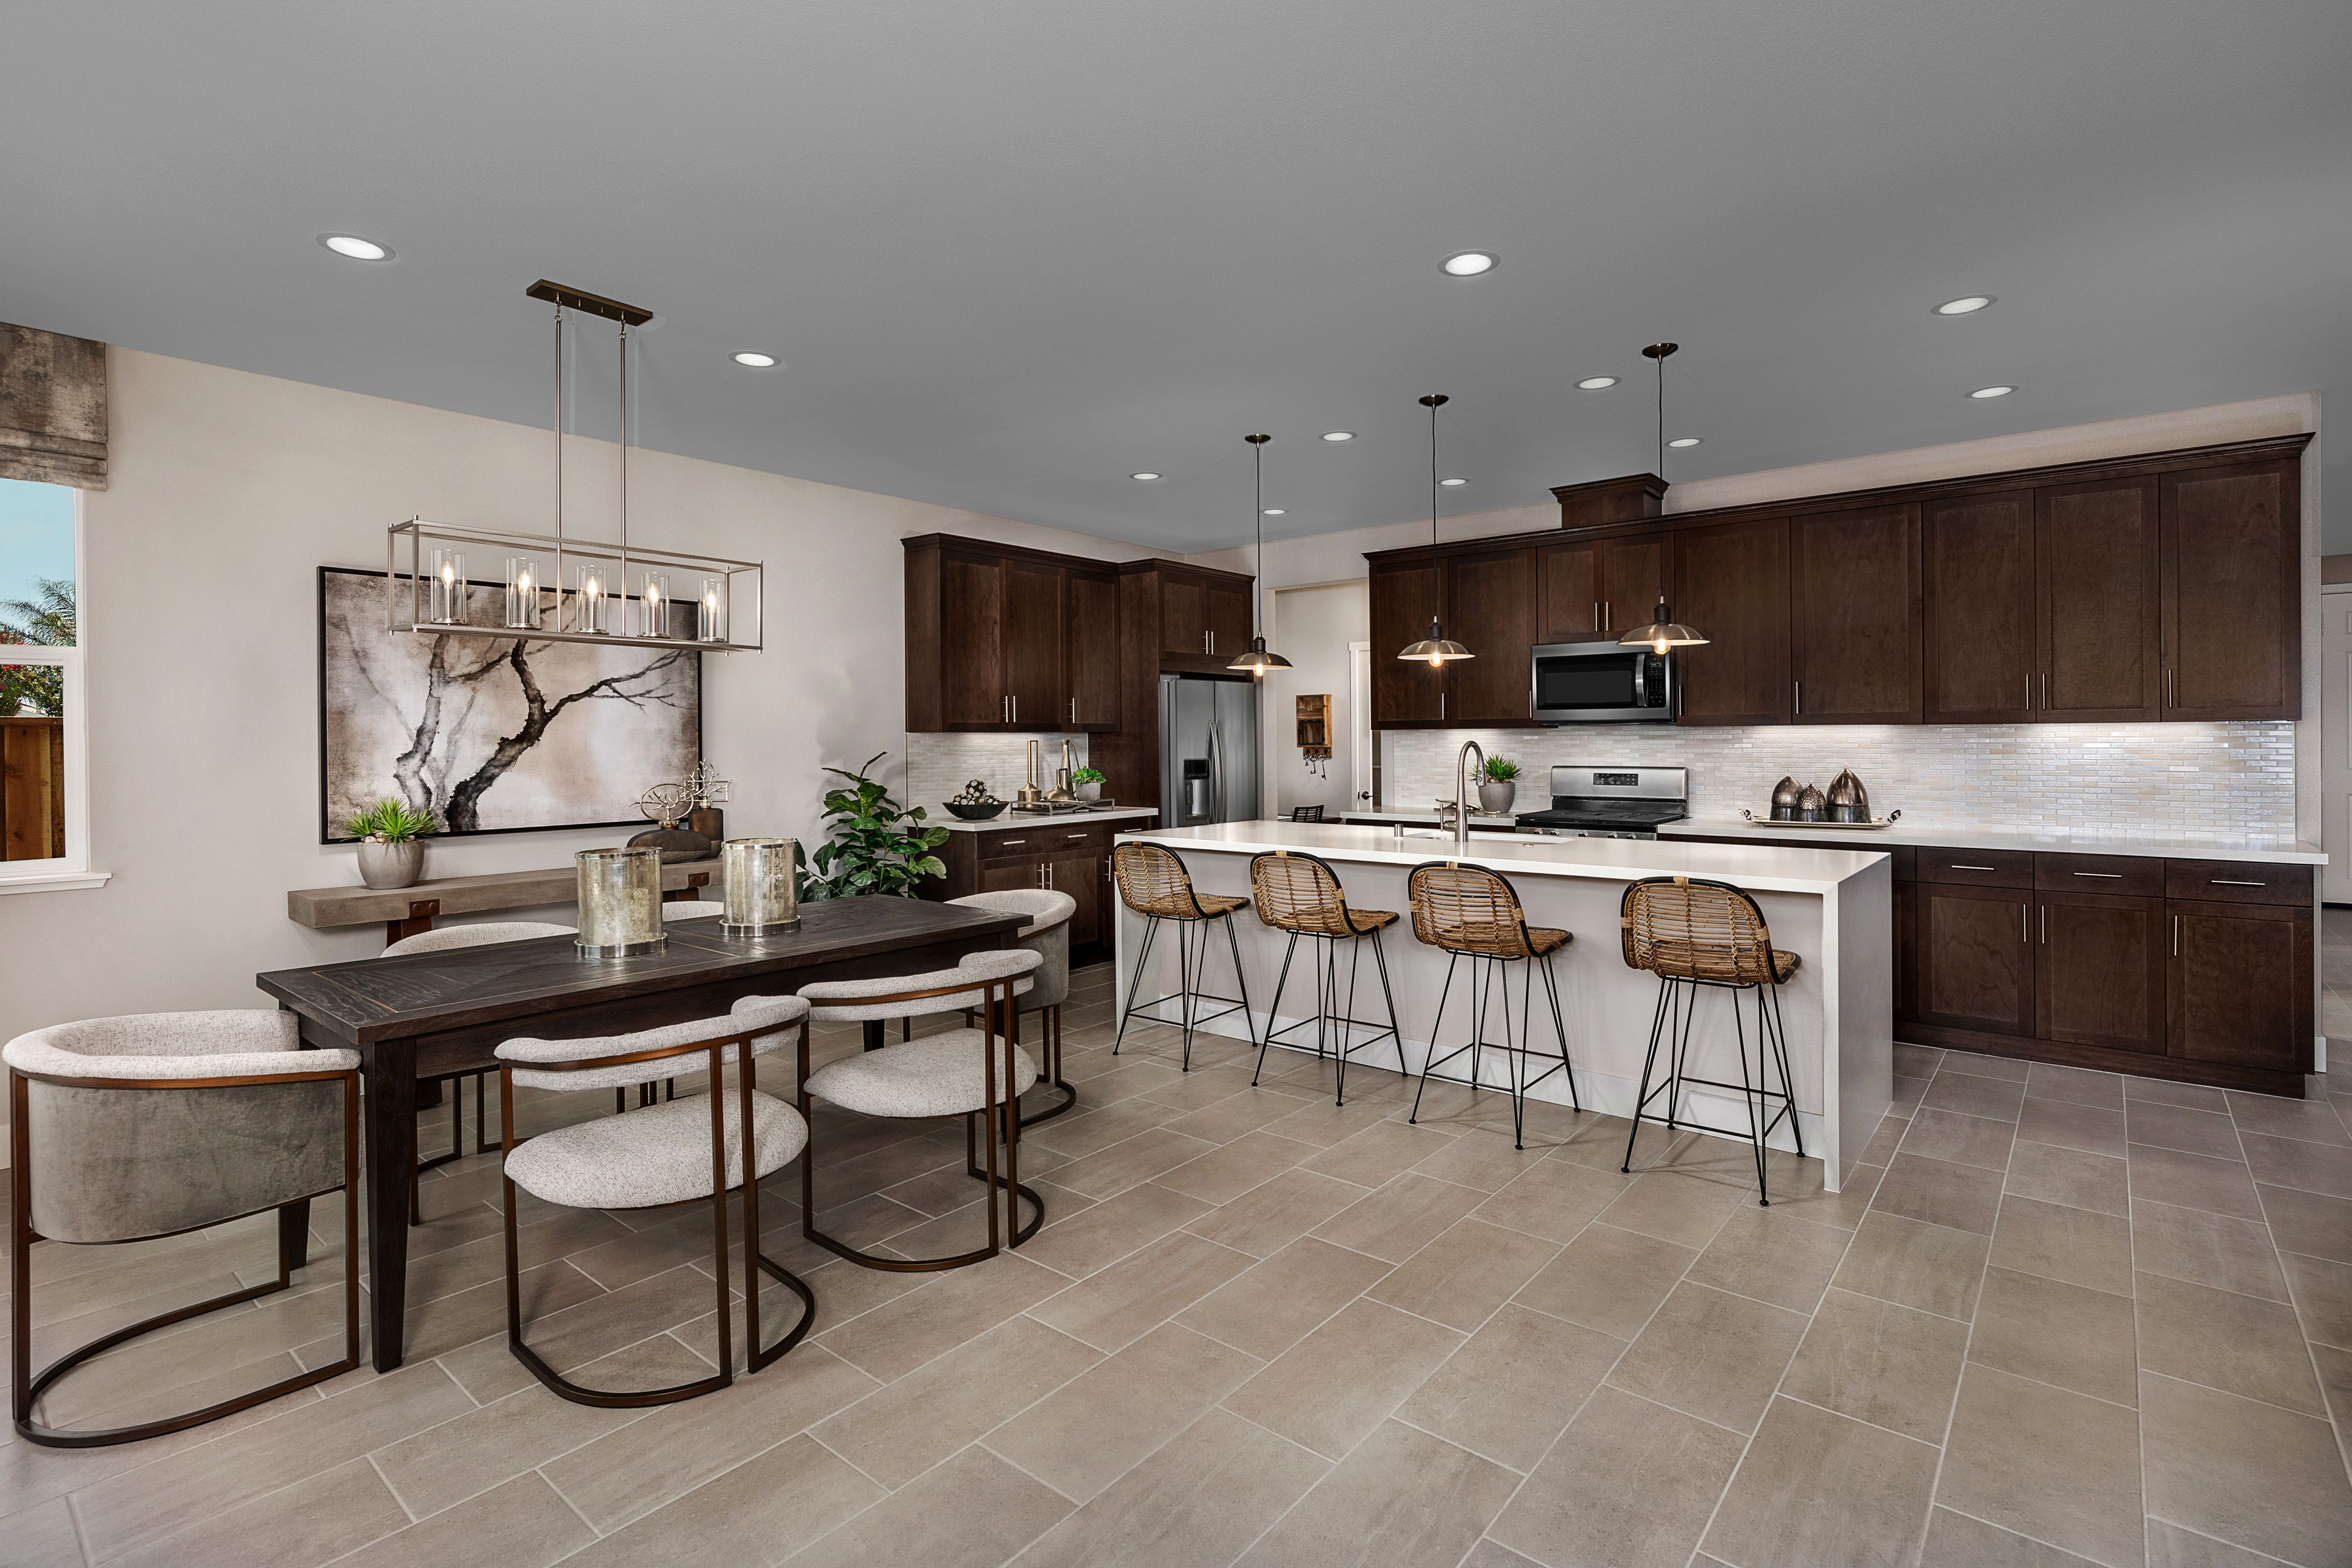 Kitchen featured in the Mayfair Residence 1 By Kiper Homes in Santa Cruz, CA